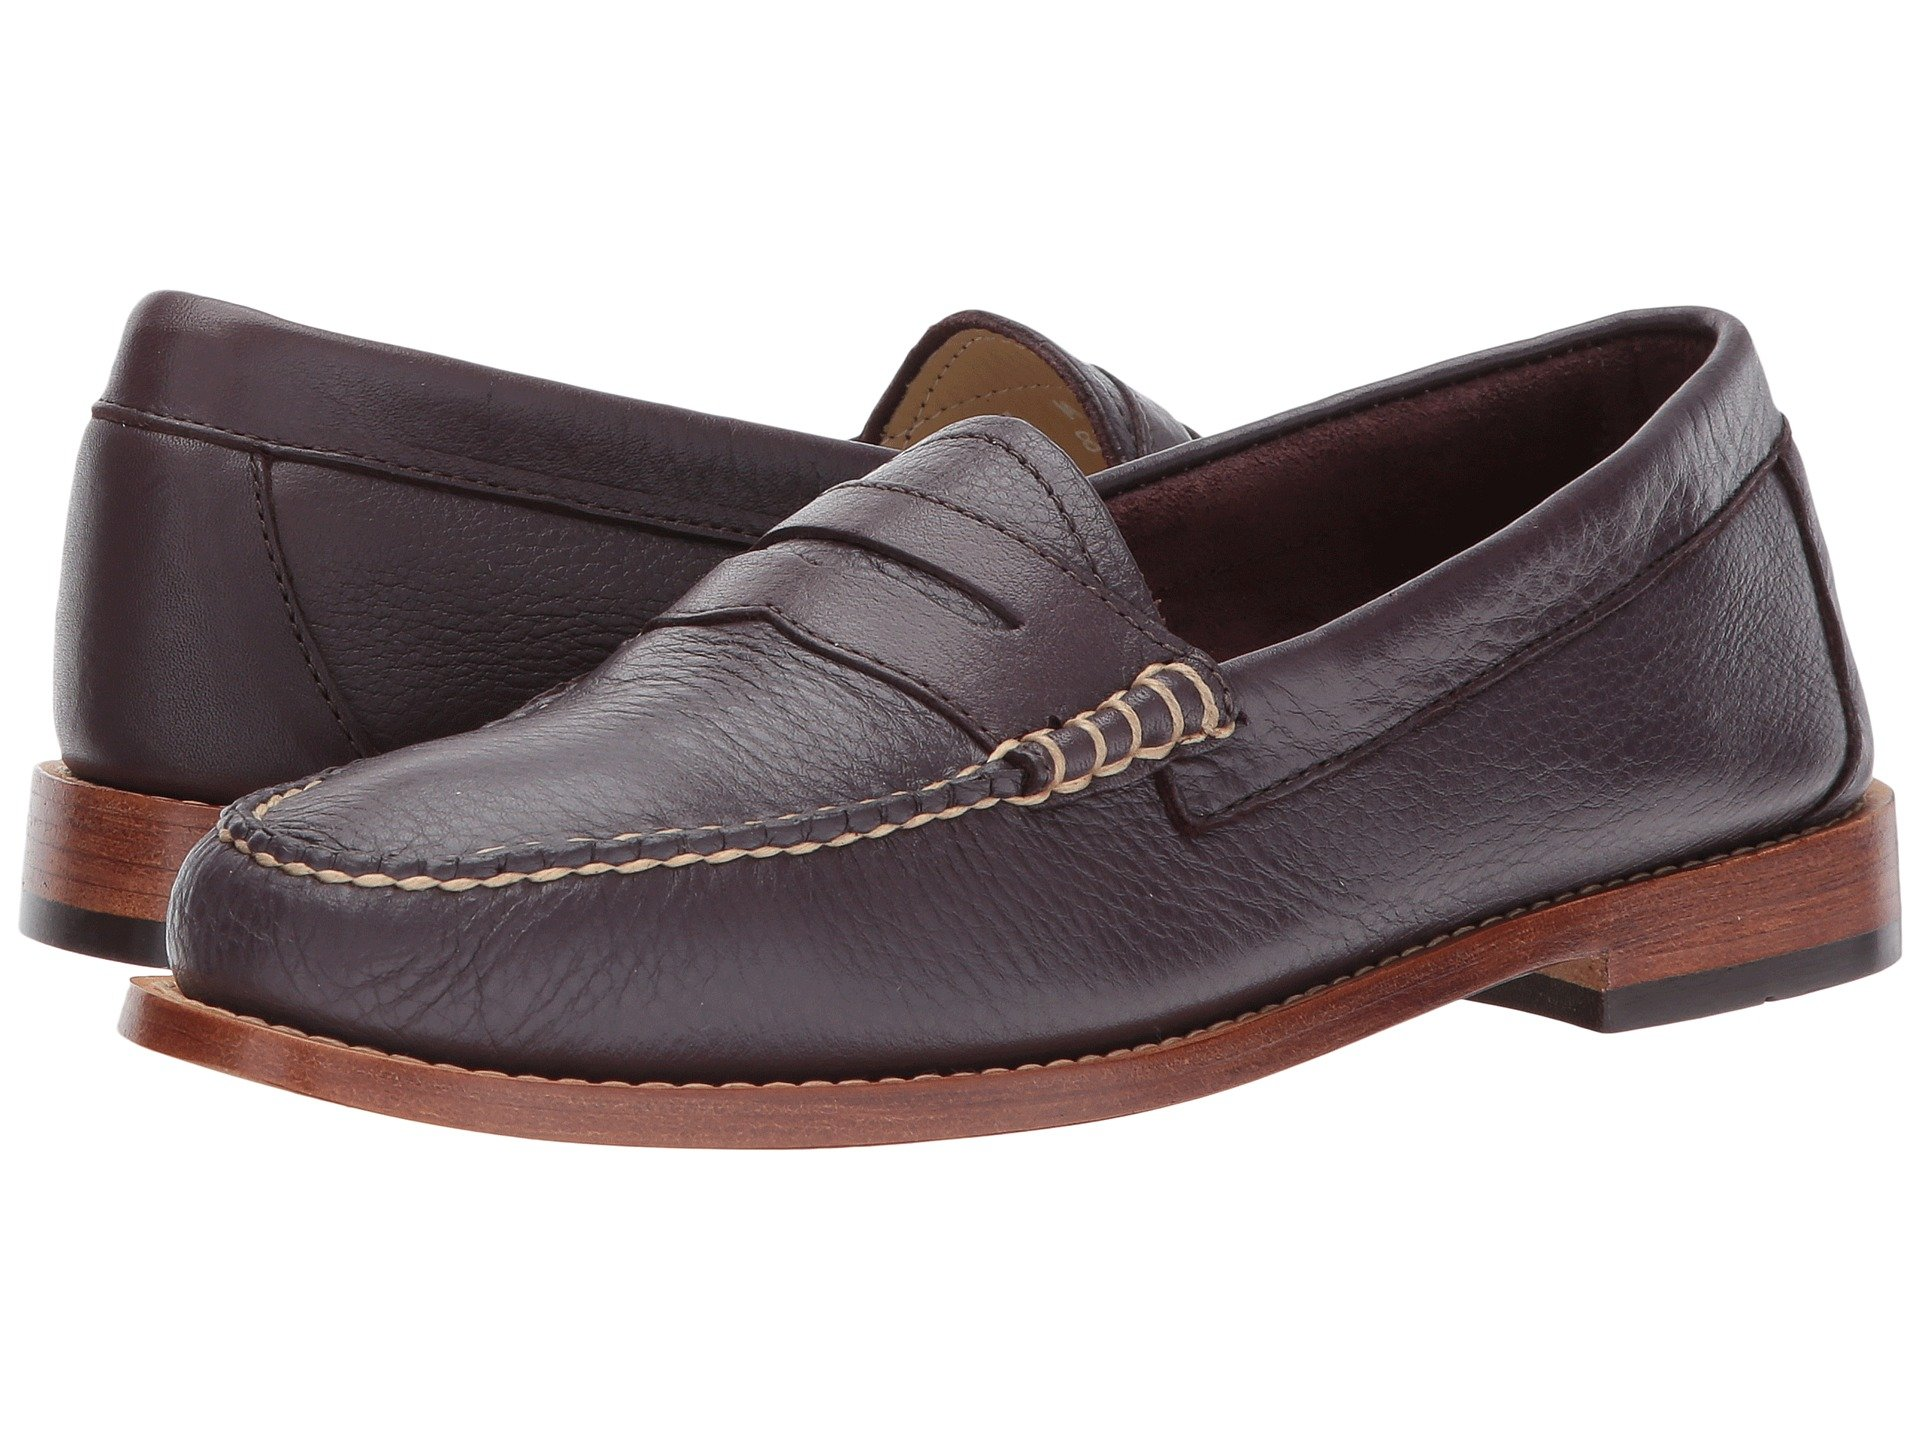 c16f74894de G.H. Bass   Co. Whitney Weejuns In Eggplant Soft Tumbled Leather ...